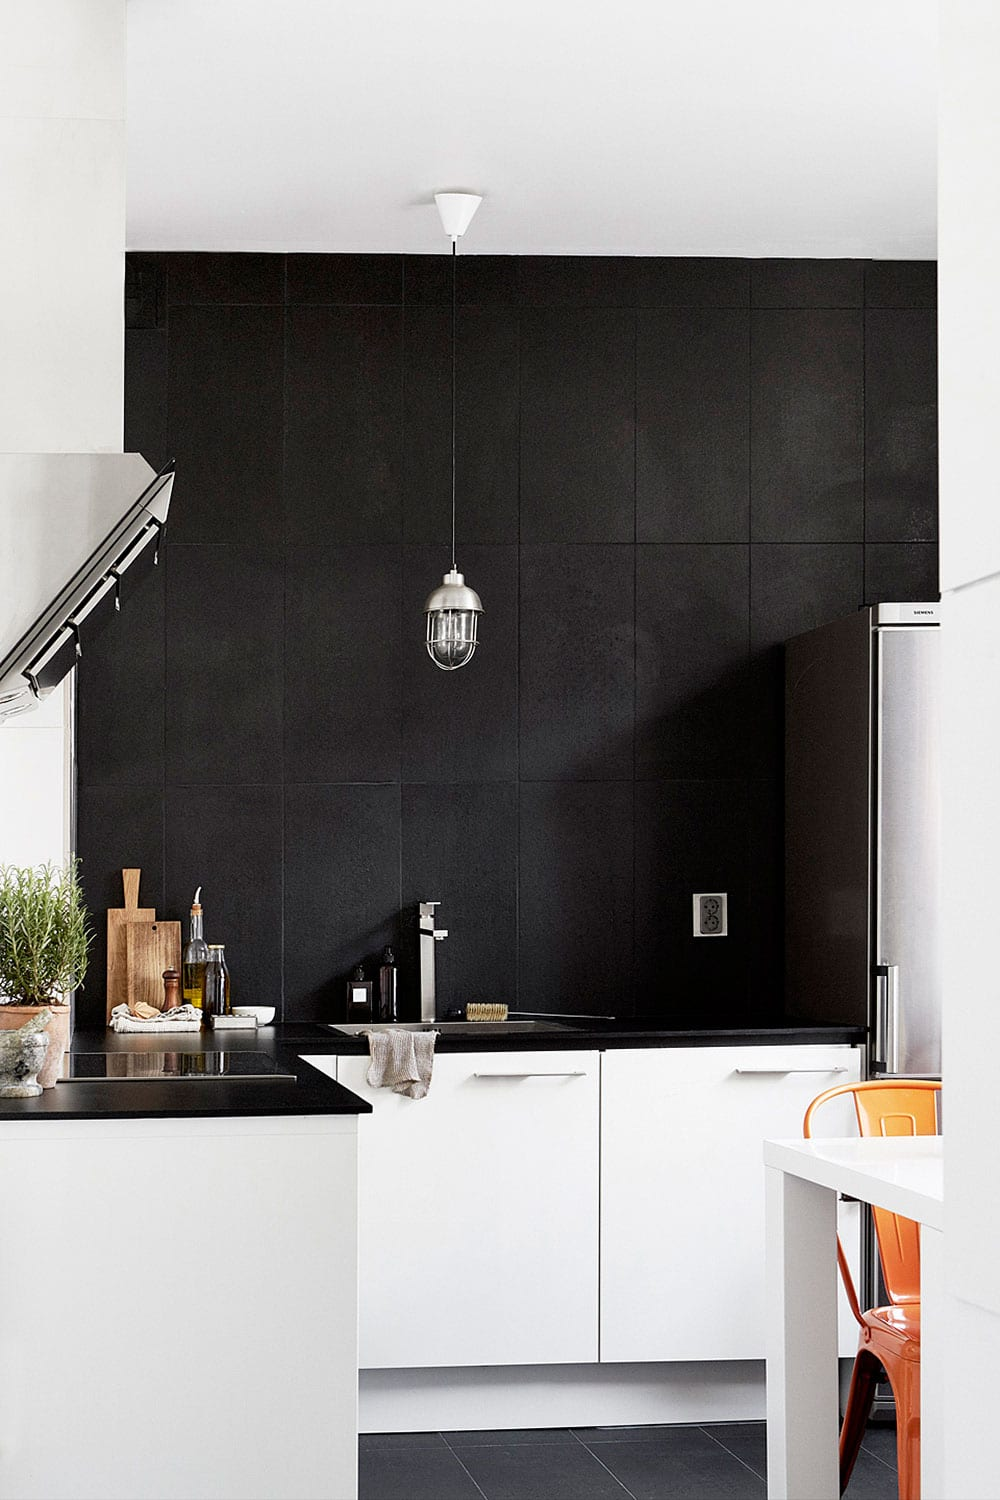 StyleAndMinimalism | Interiors | Styled By Josefin Hääg, Photographed by Emily Laye